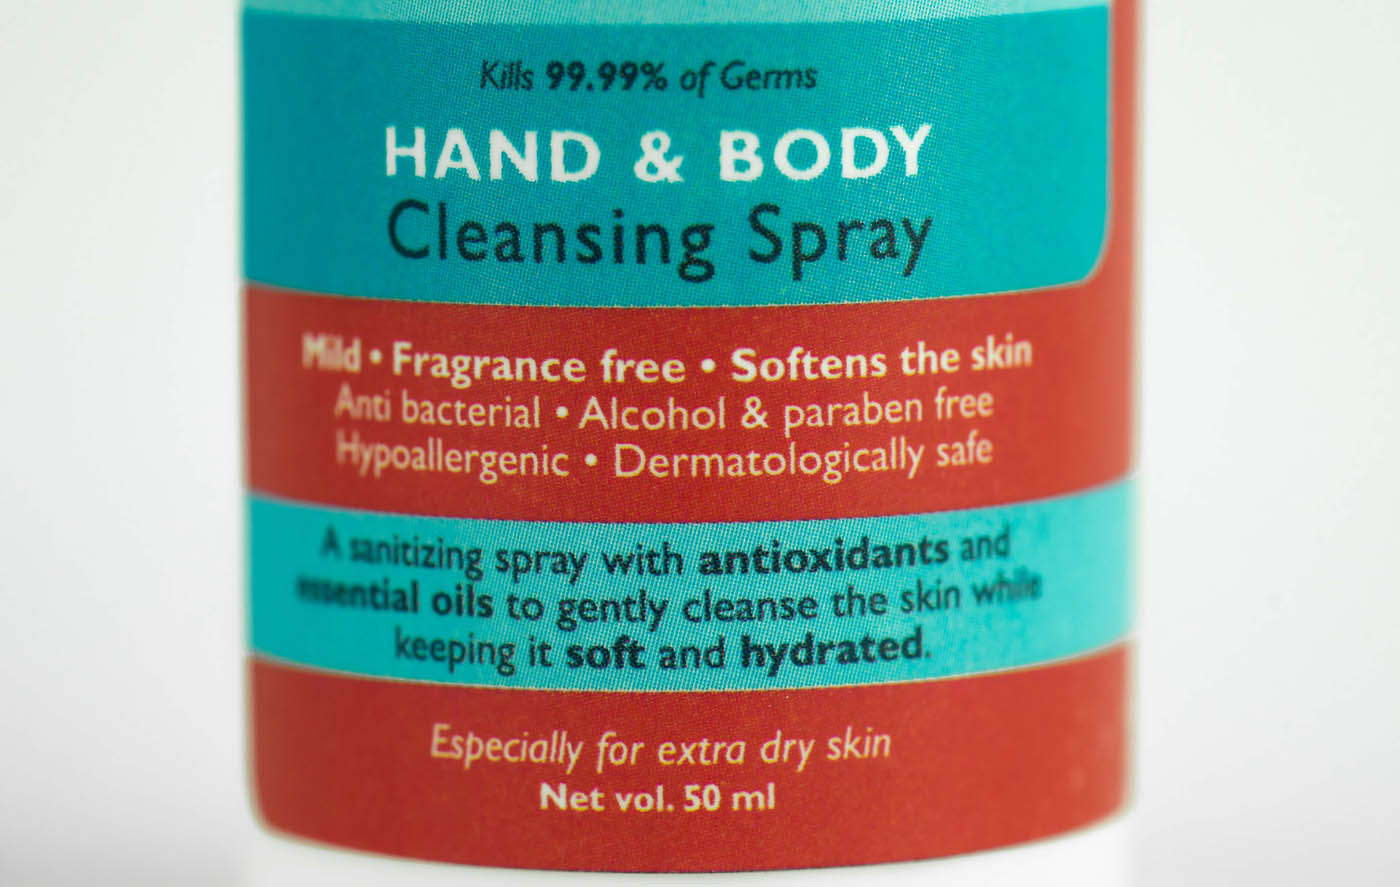 Hand and Body Cleansing Spray